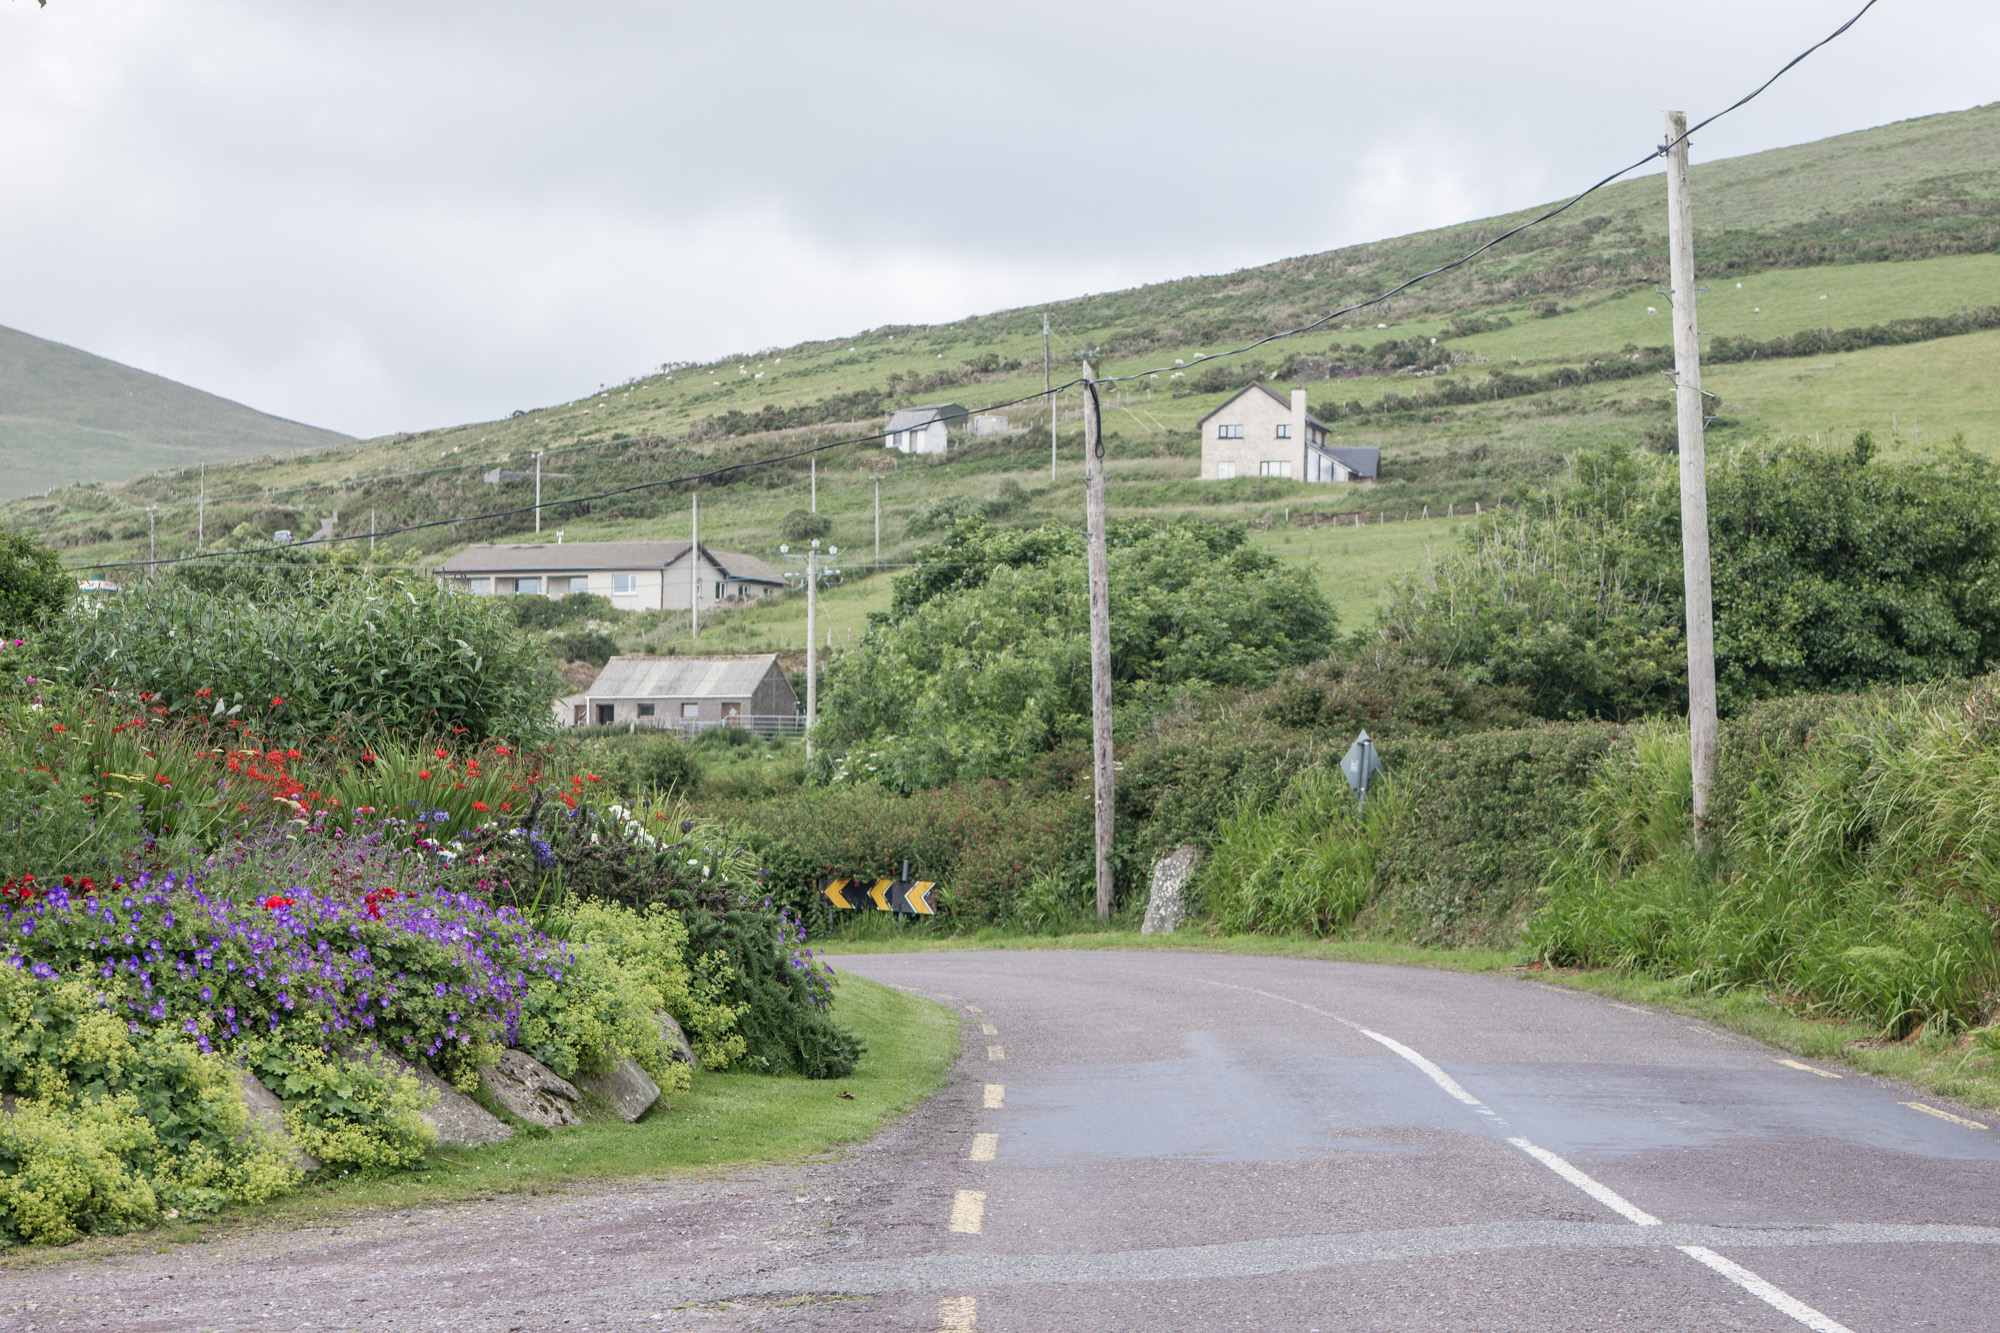 Road on Slea Head Drive in Ireland surrounded by green grassy hills and cute houses